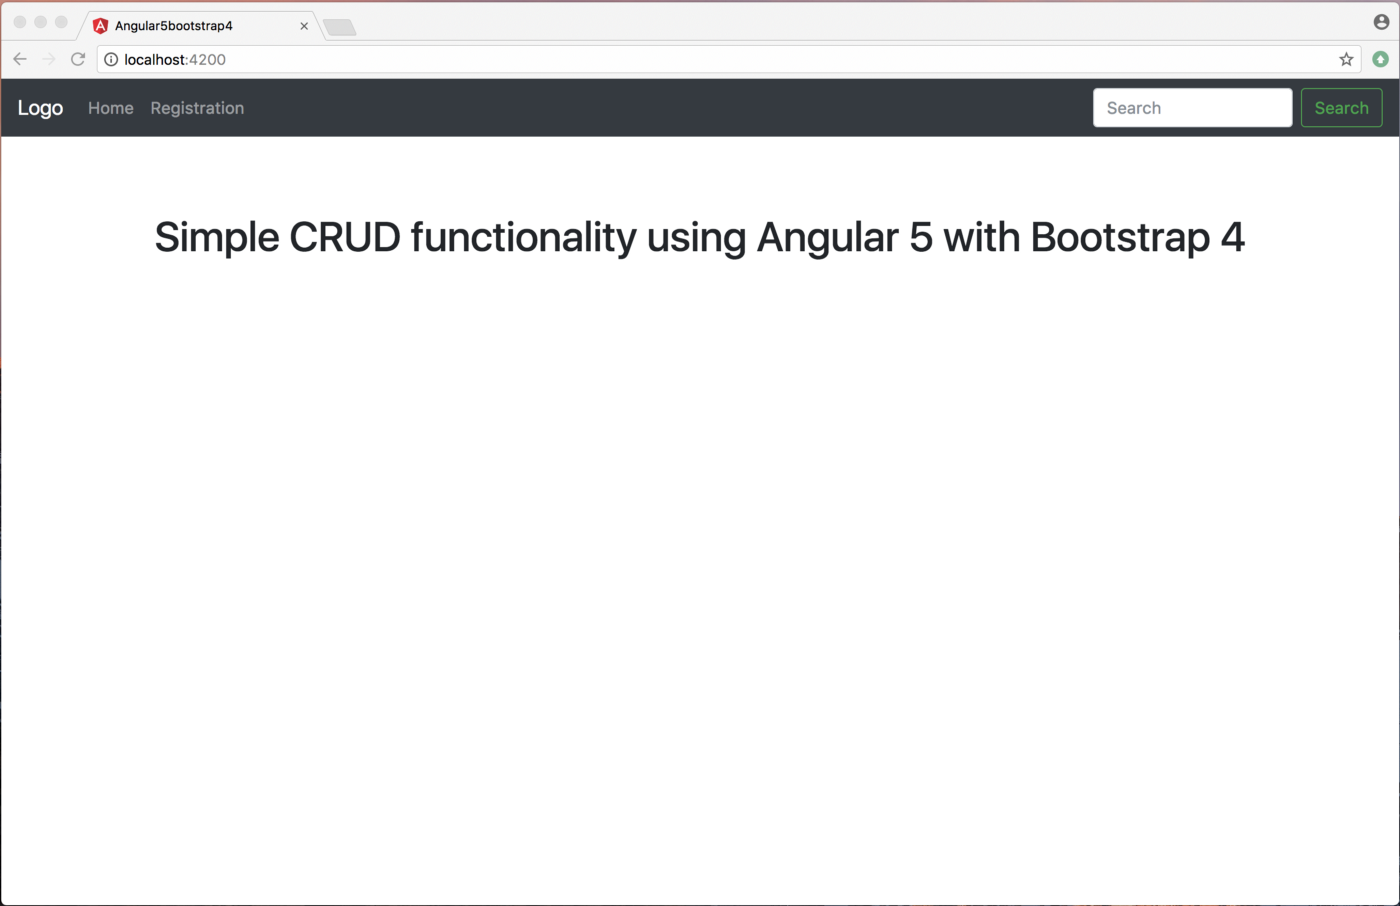 Simple CRUD functionality using Angular 5 with Bootstrap 4